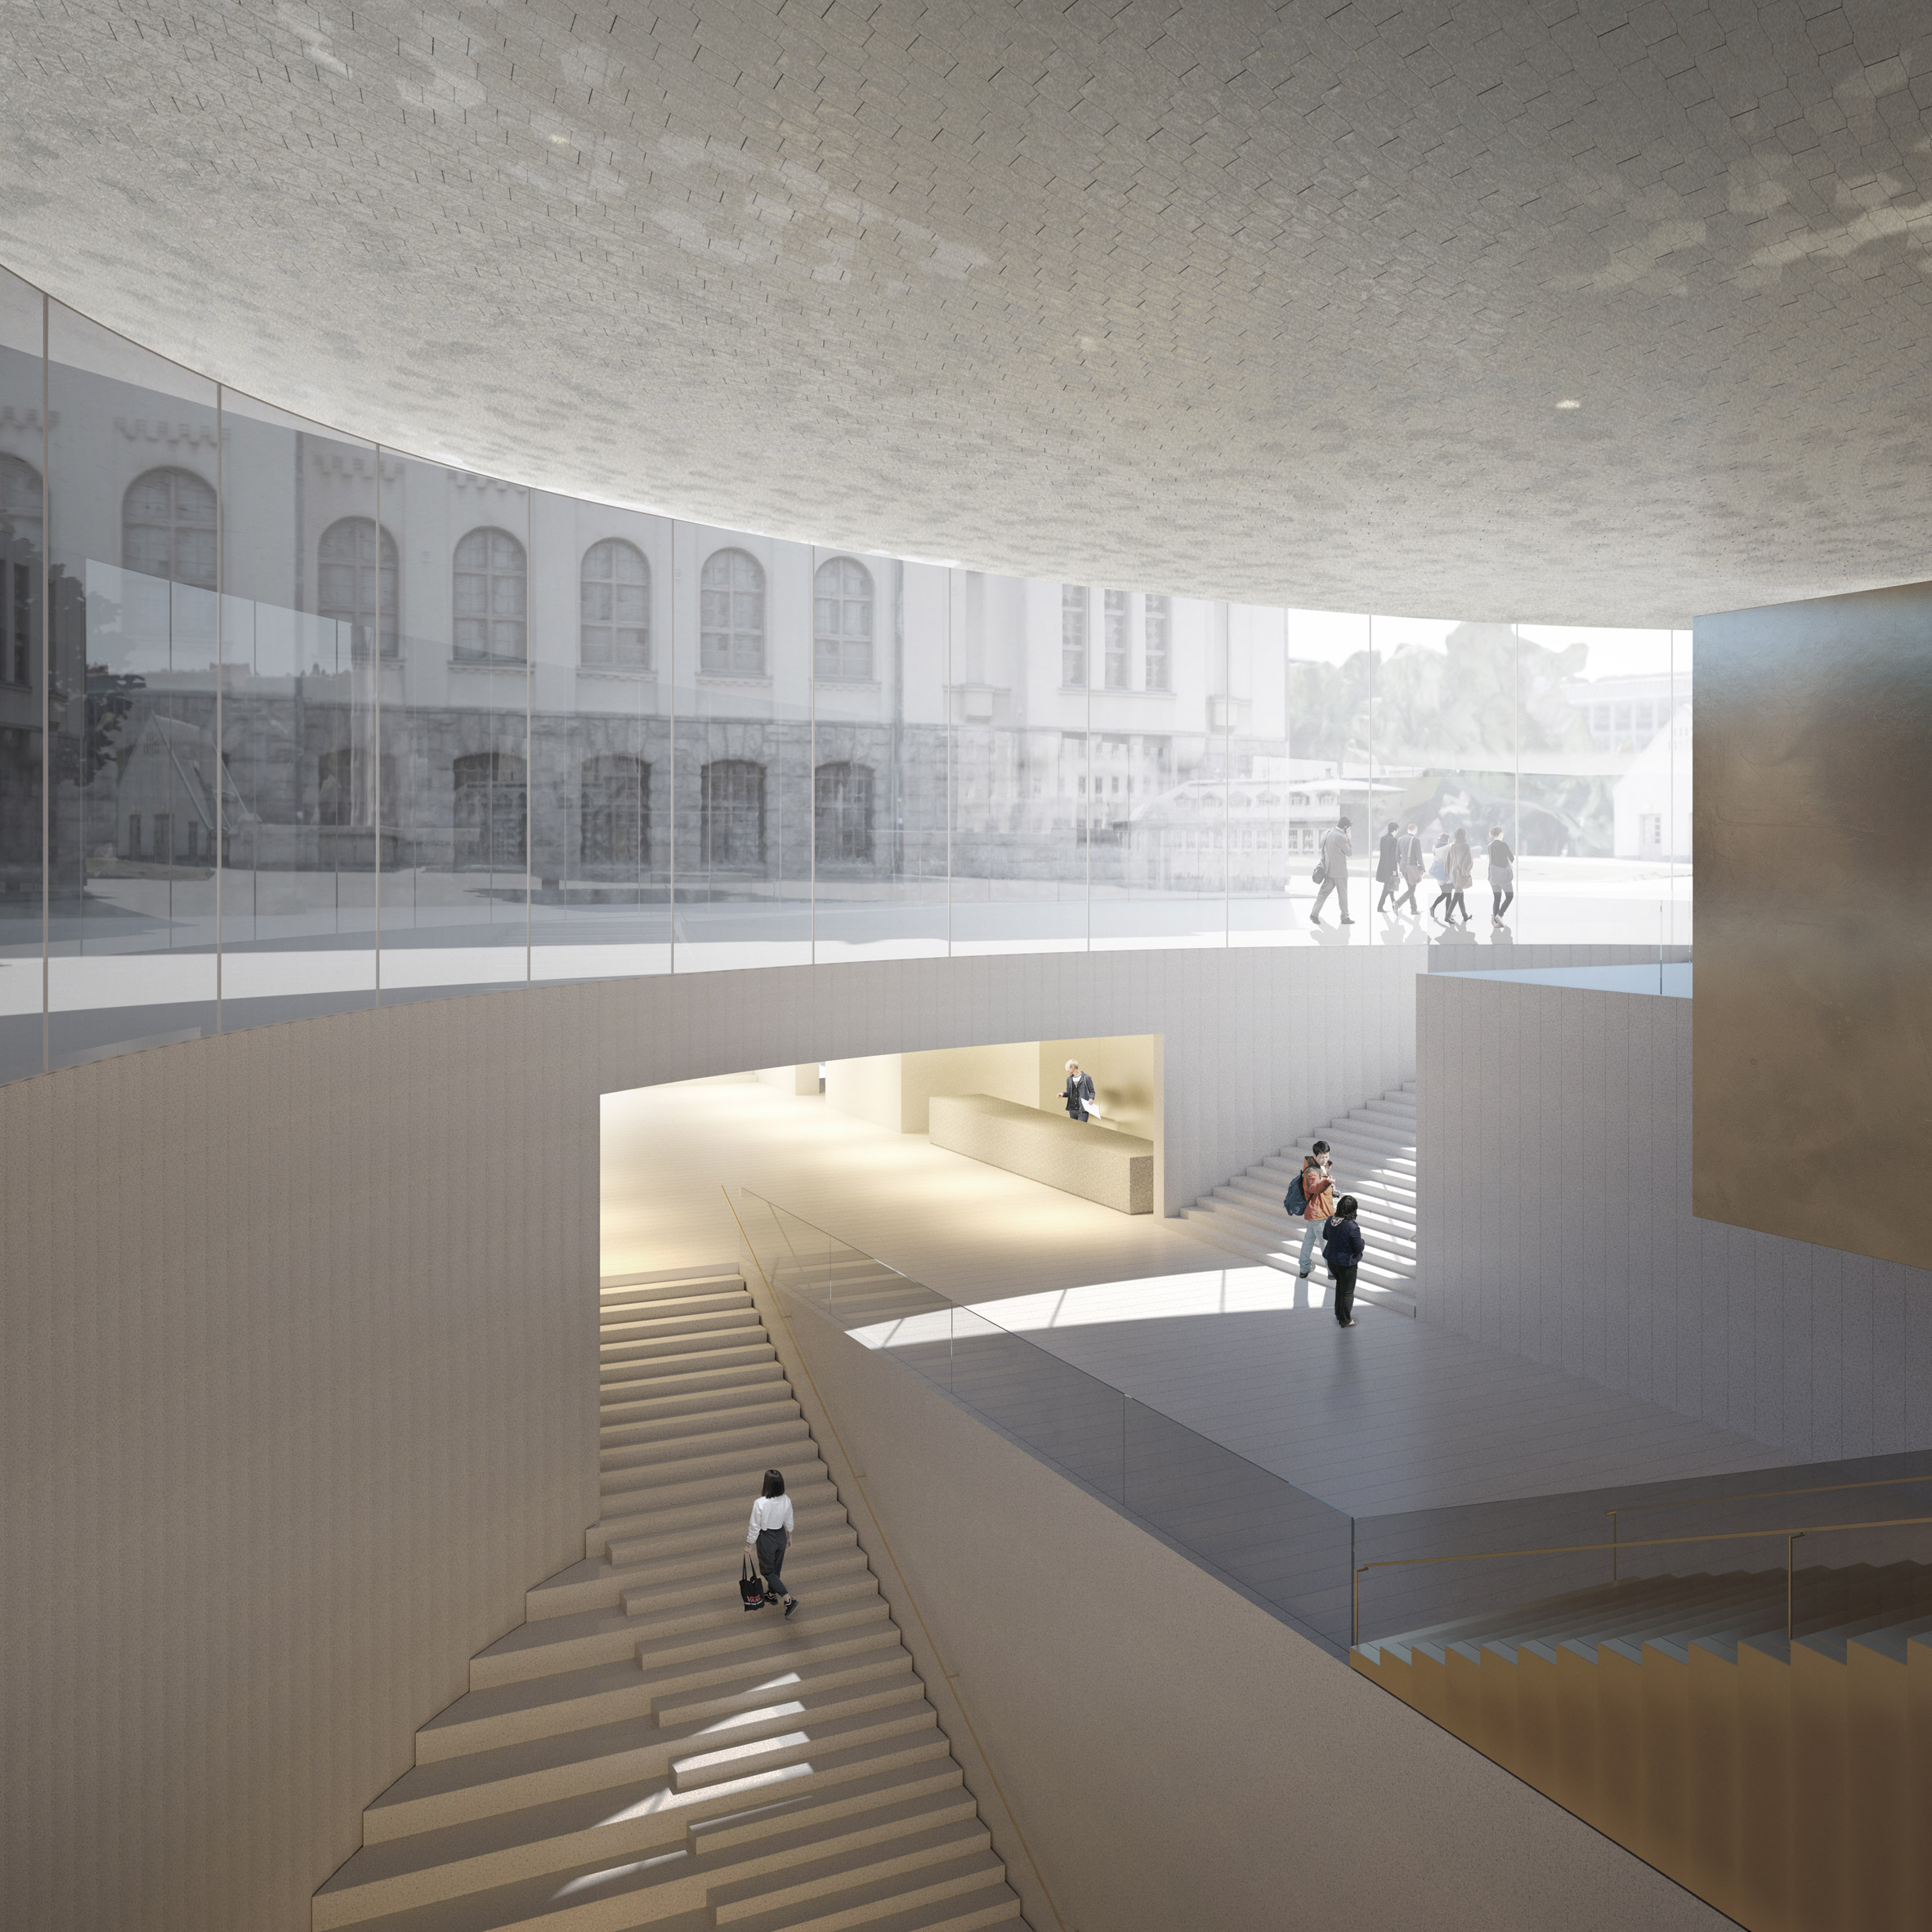 National Museum of Finland extension by JKMM Architects